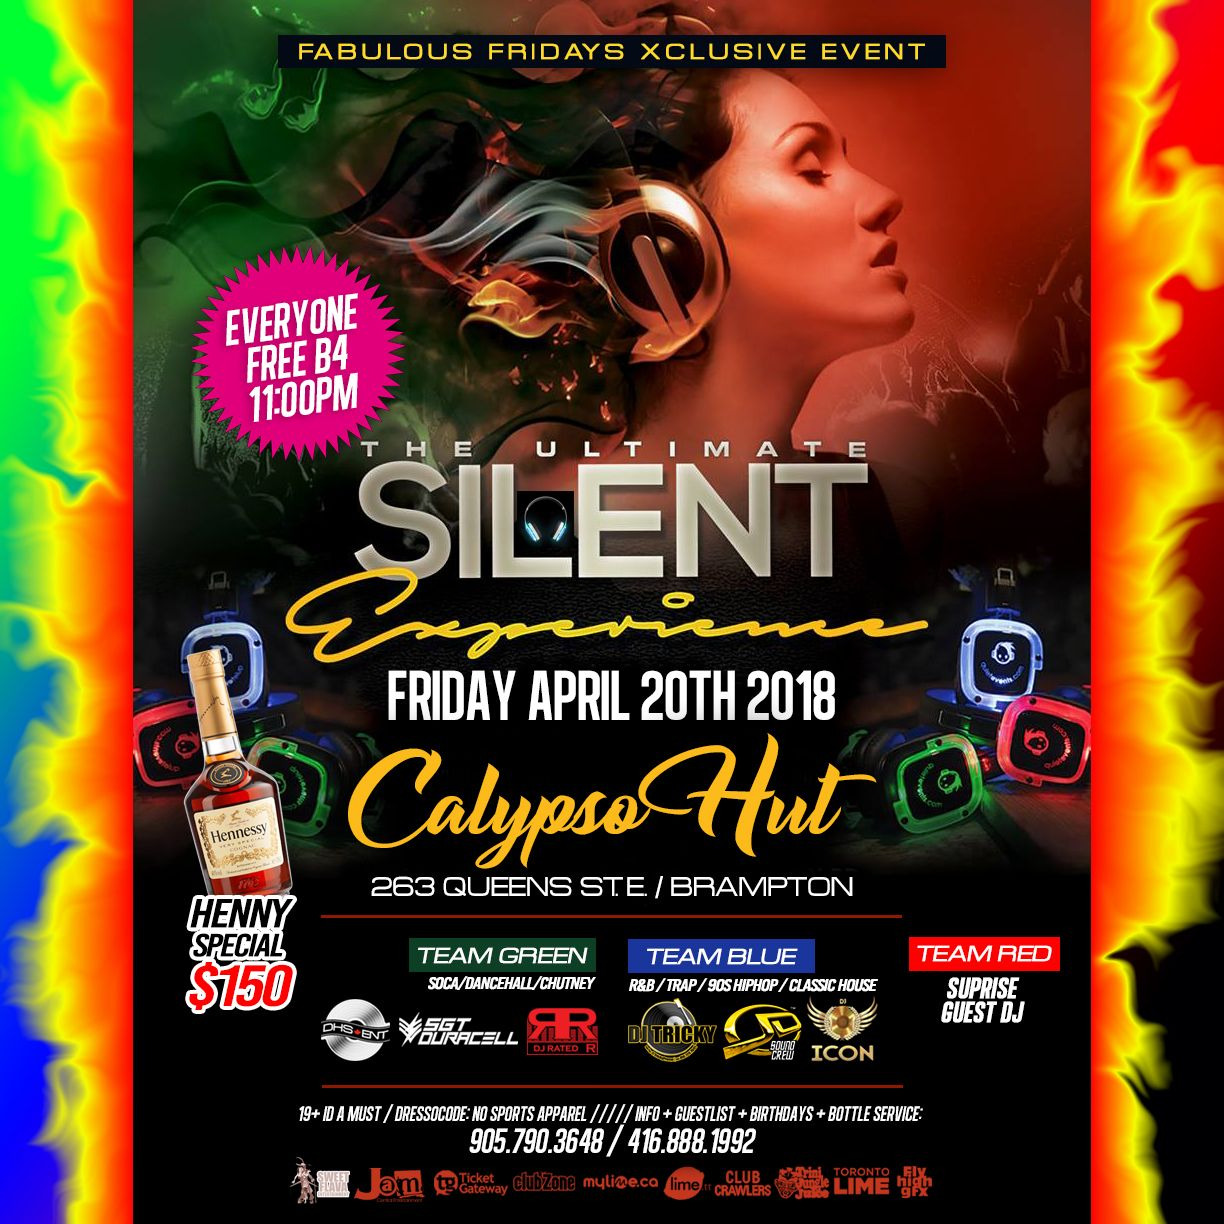 FABULOUS FRIDAYS @ CALYPSO HUT GETS EVEN BIGGER